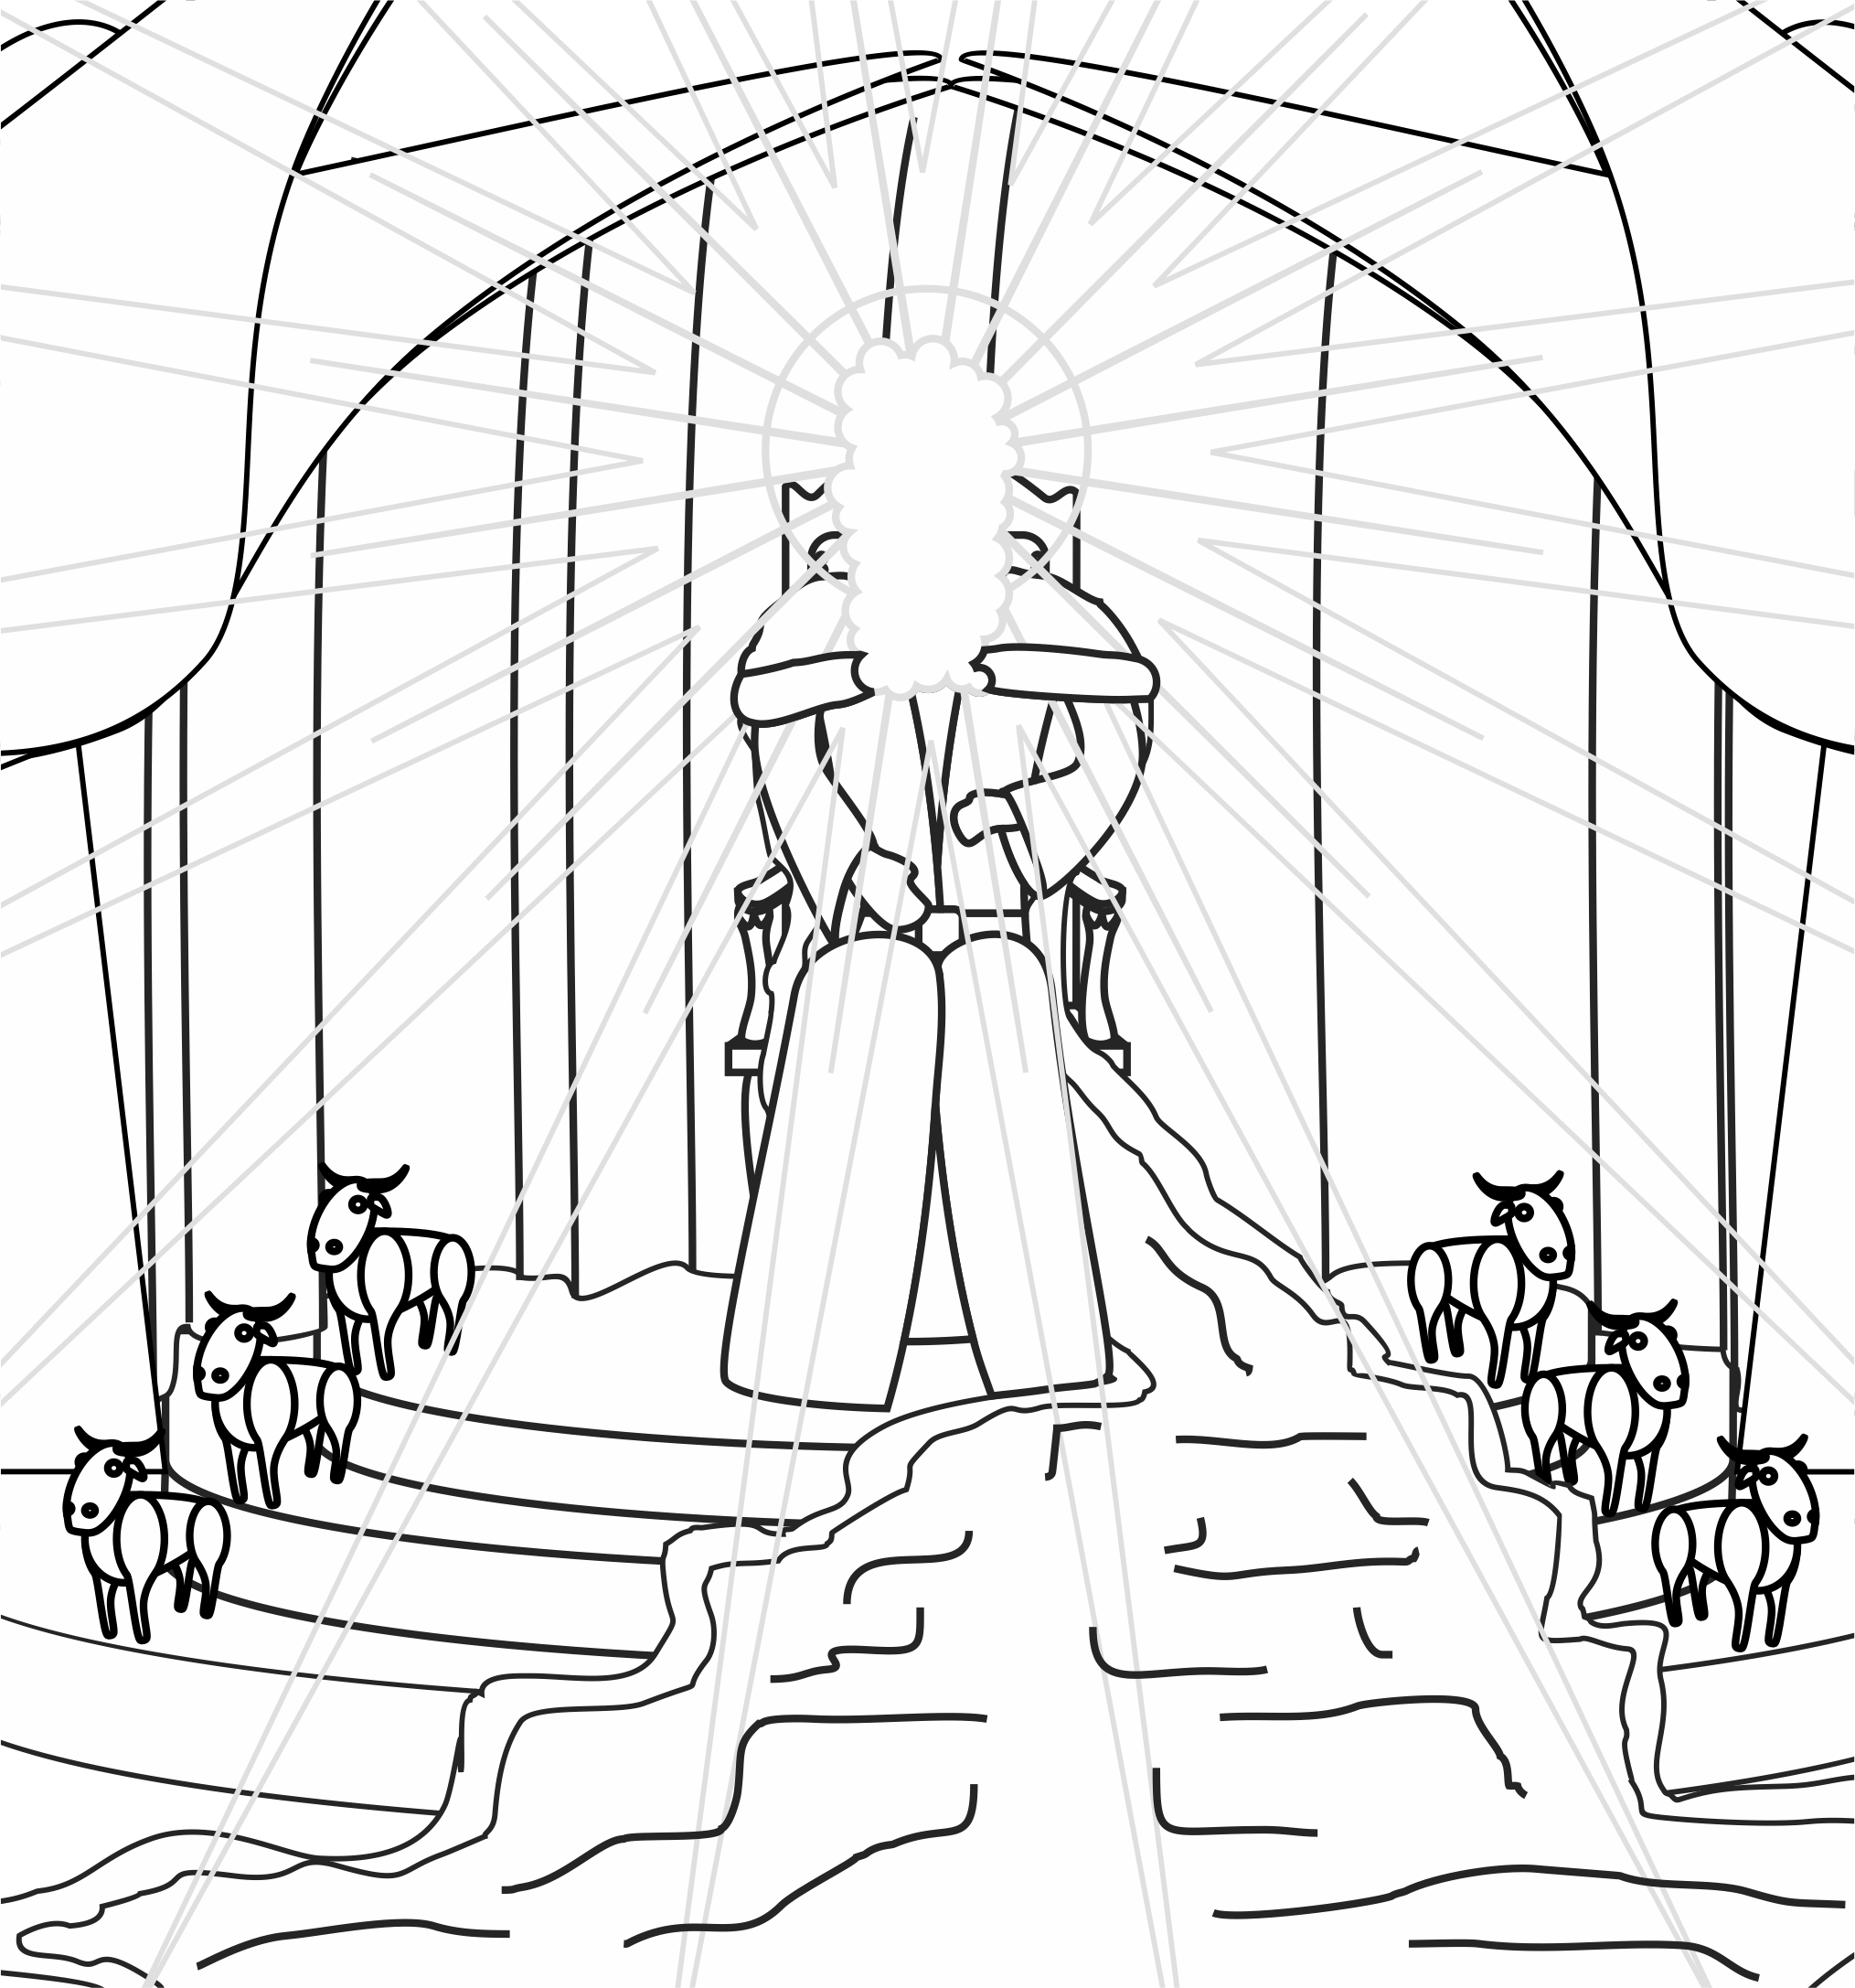 sodom and gomorrah coloring page our bible coloring pages